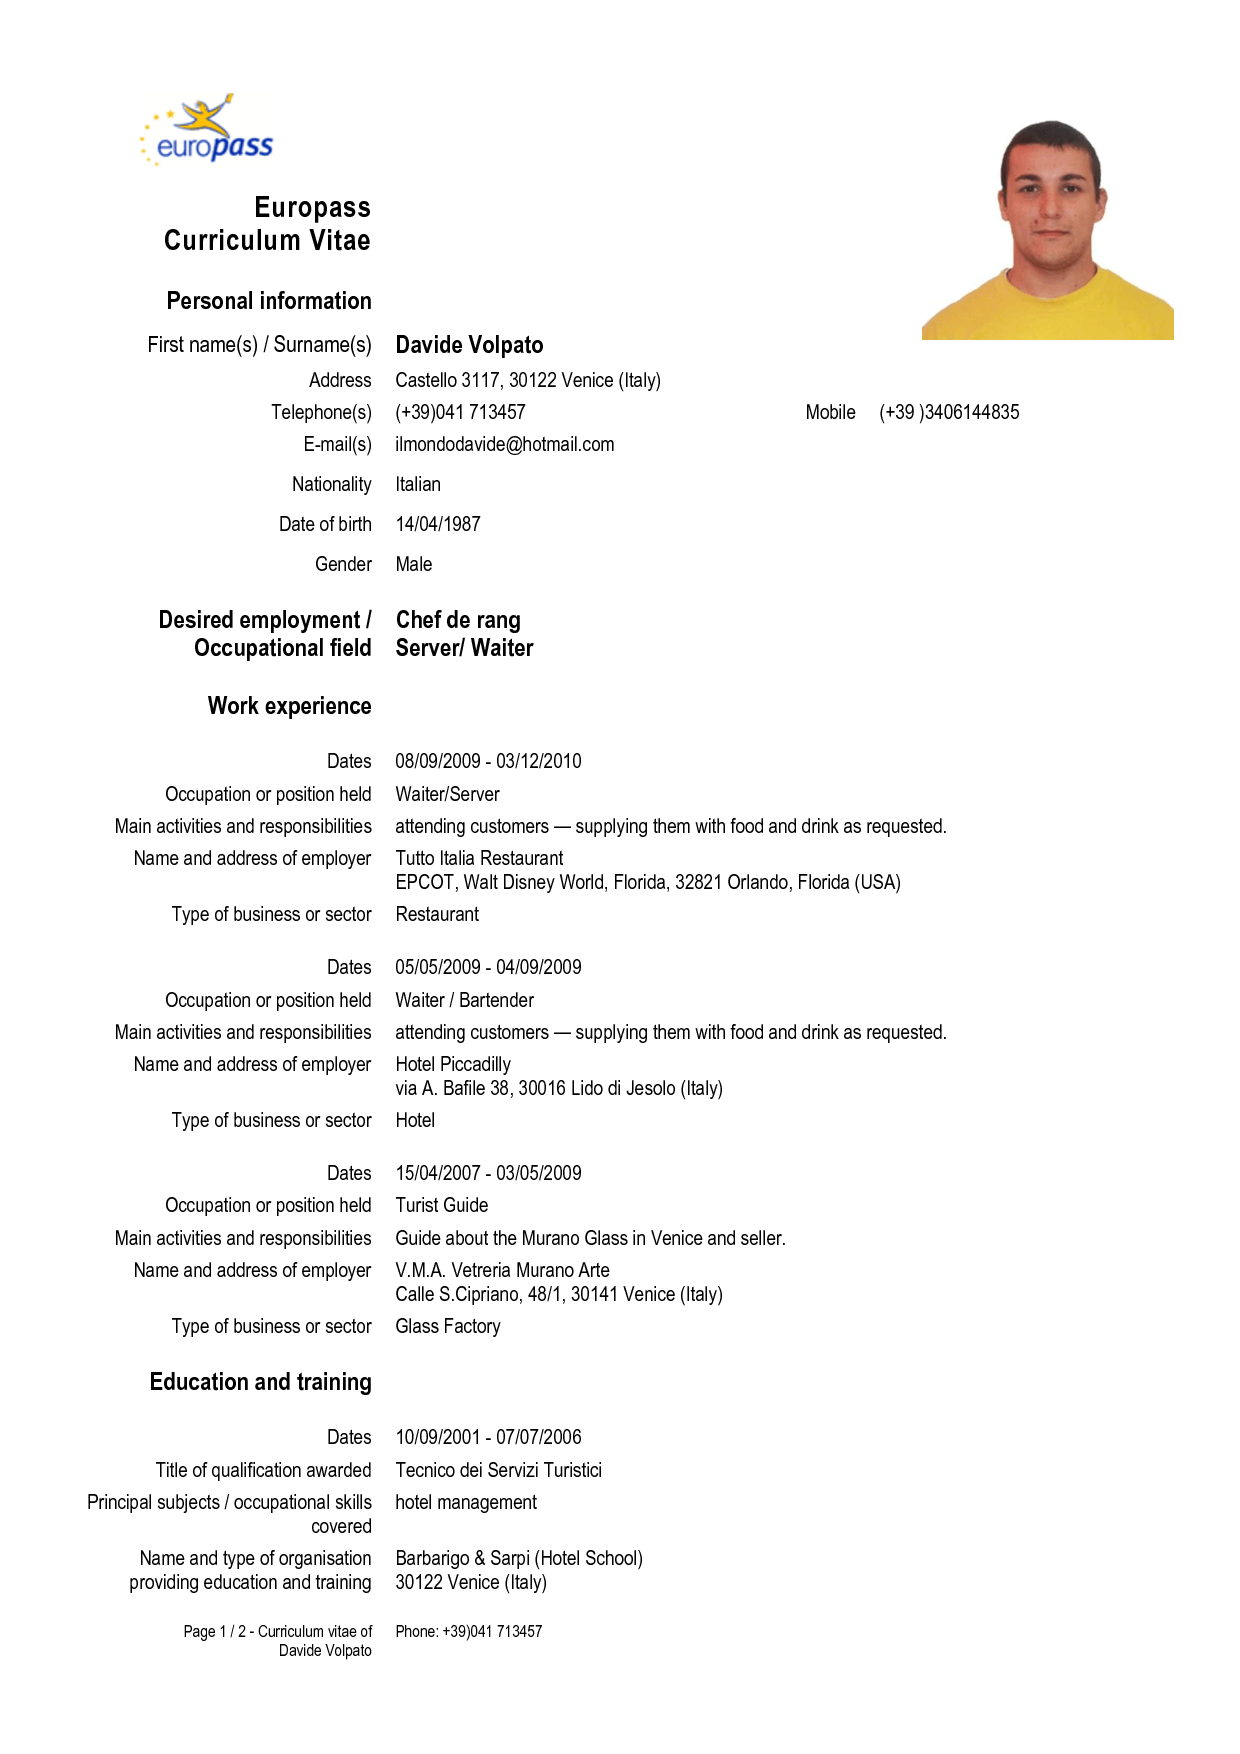 Resume Template For Microsoft Word 2010 Cv Form In English Download Cv Resume Examples To Download For